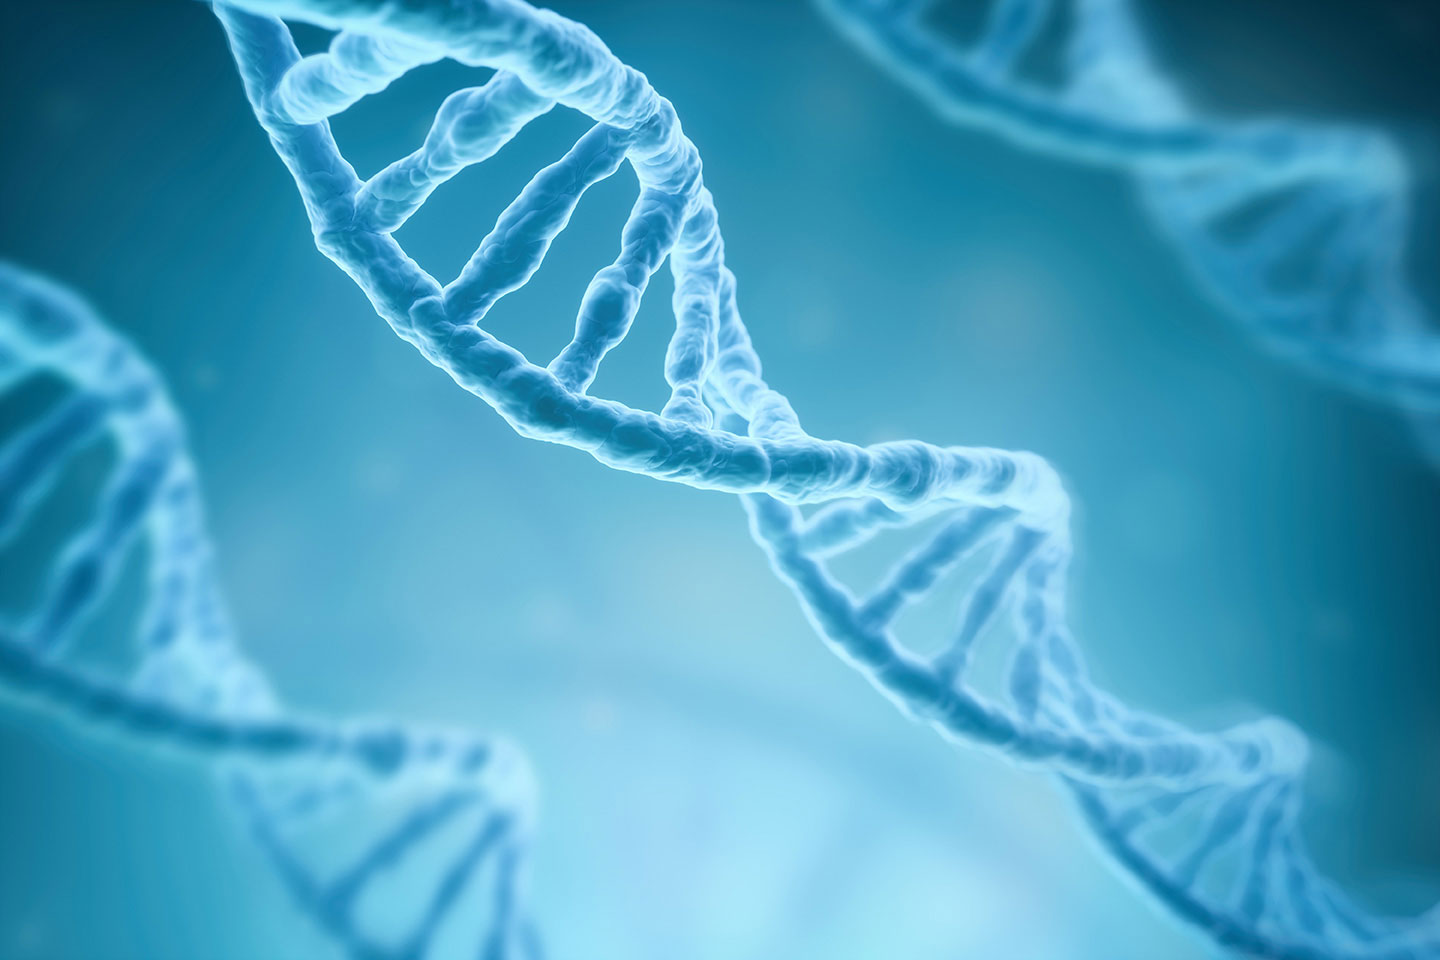 Project reaches goal of 100,000 genomes from NHS patients